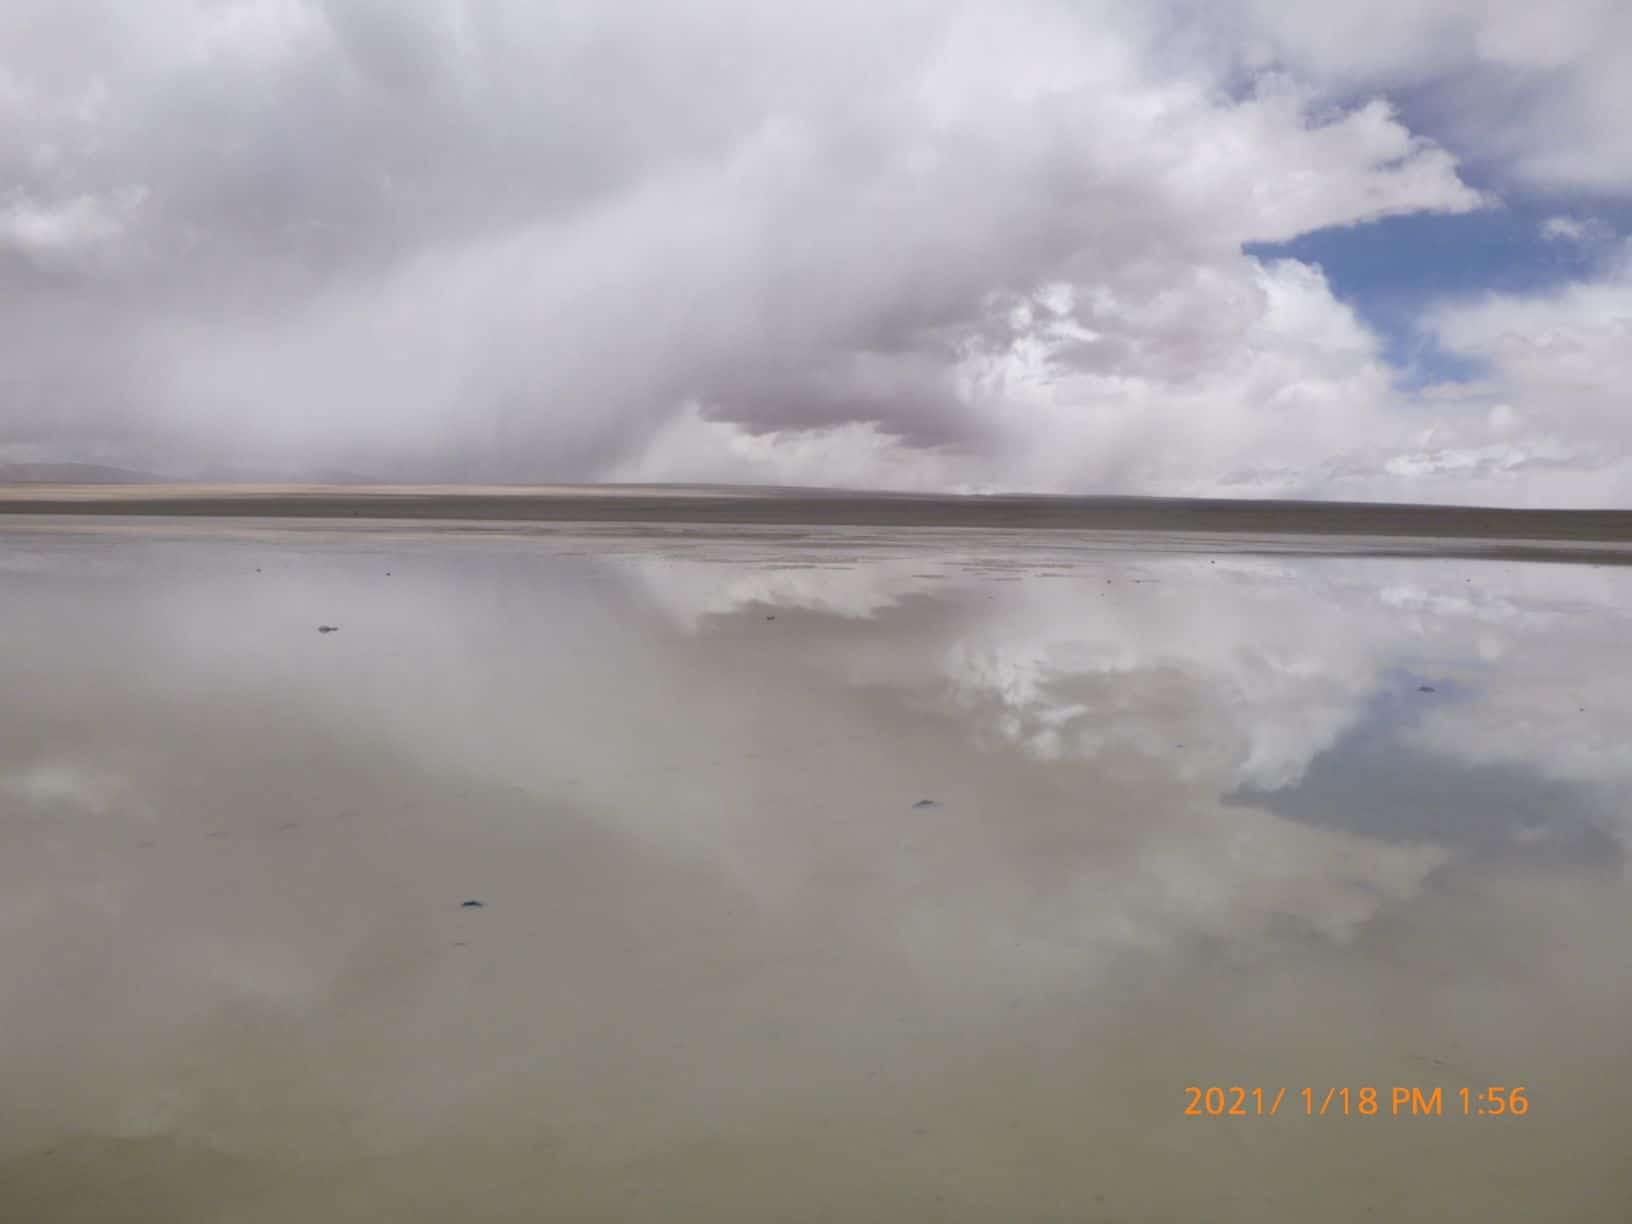 LITHIUM CHILE EXPANDS INTO ARGENTINA WITH 850MG/L+ LITHIUM PROPERTY WITH AGREEMENT TO EARN INTO THE 233SQKM SALAR De ARIZARO PROPERT